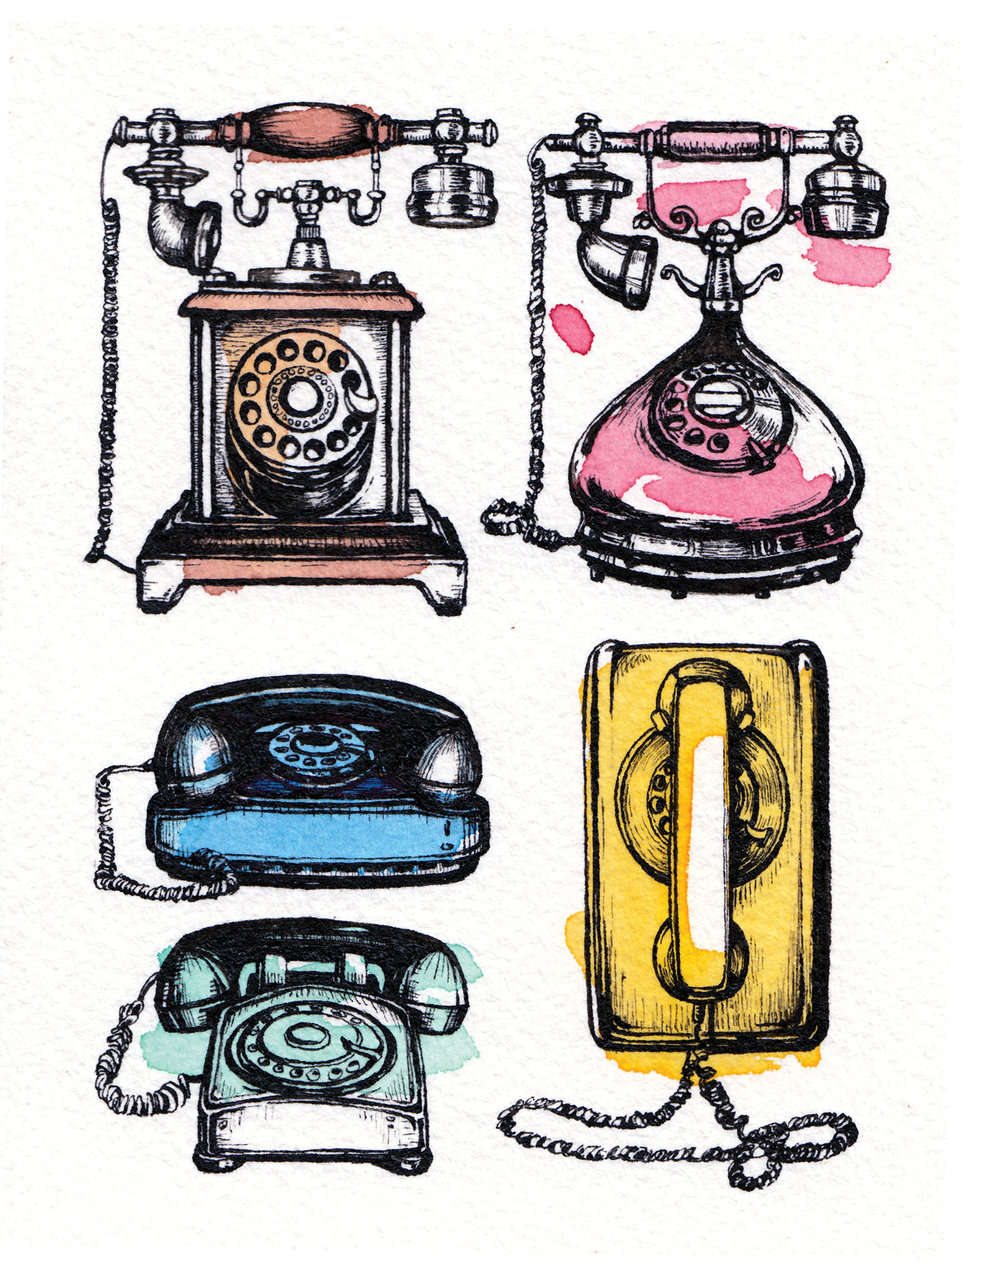 Revolutionary Technology: Rotary Phones